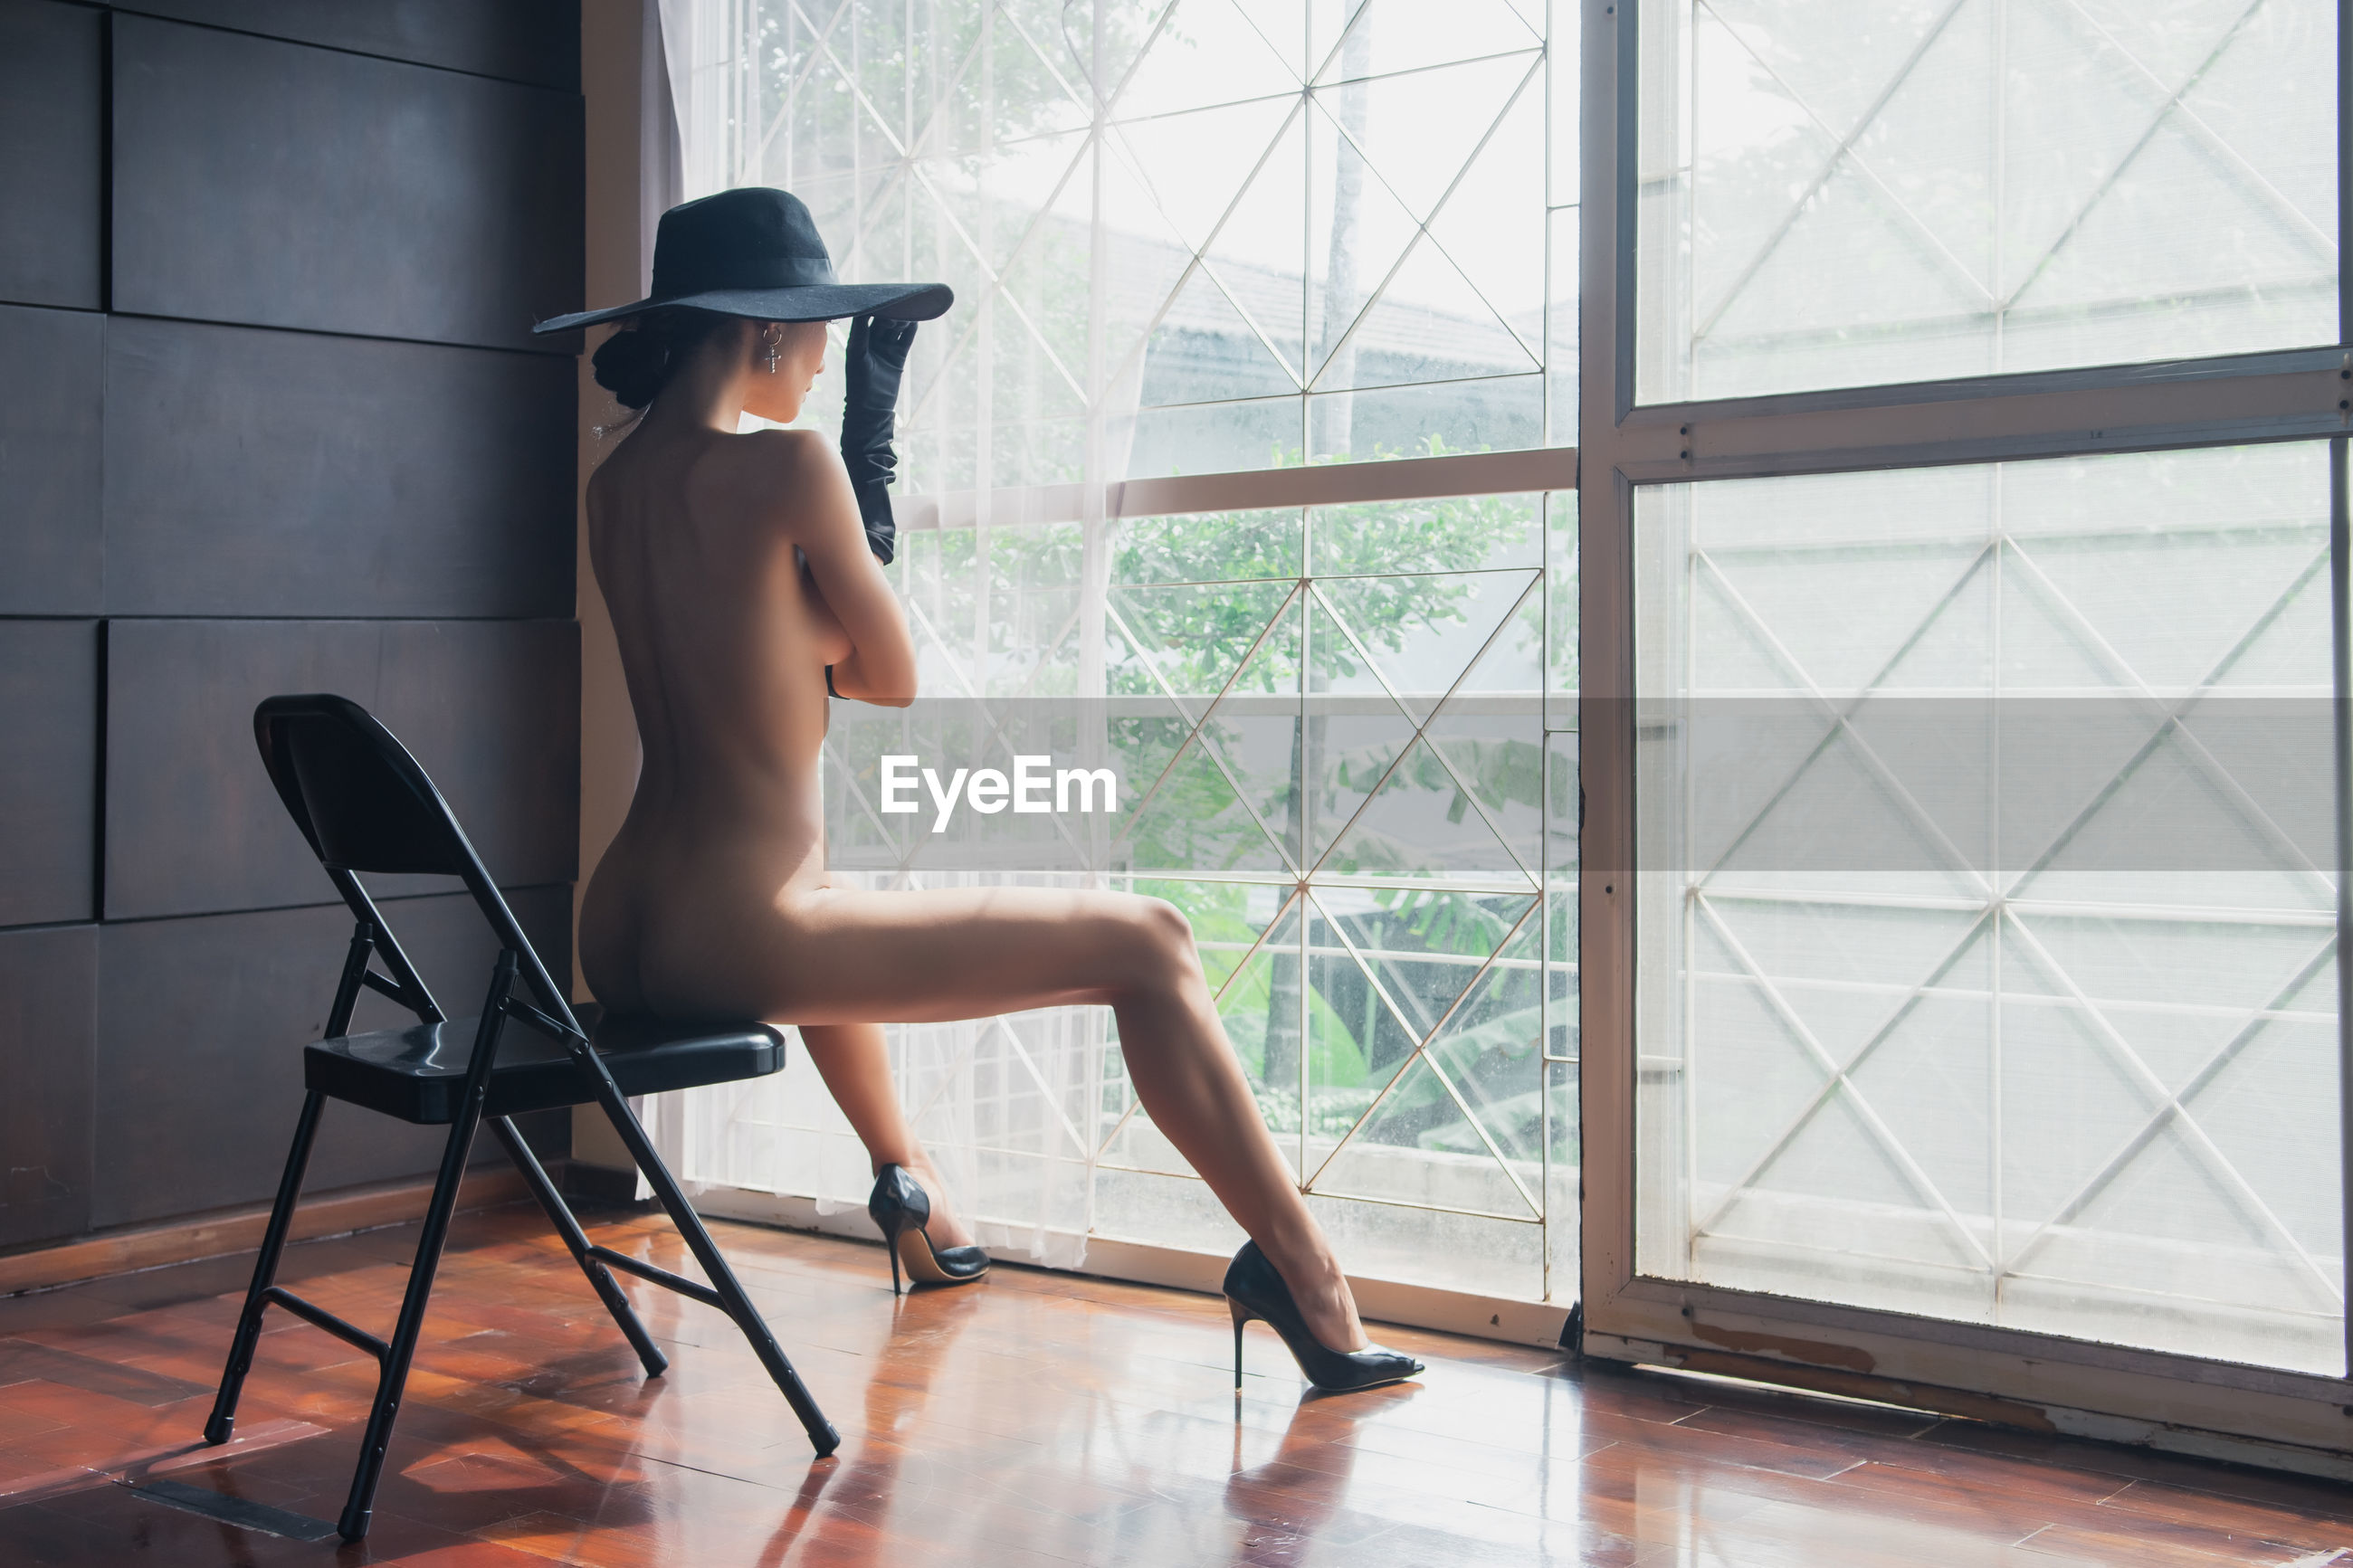 Naked woman sitting on chair by curtain against wall at home